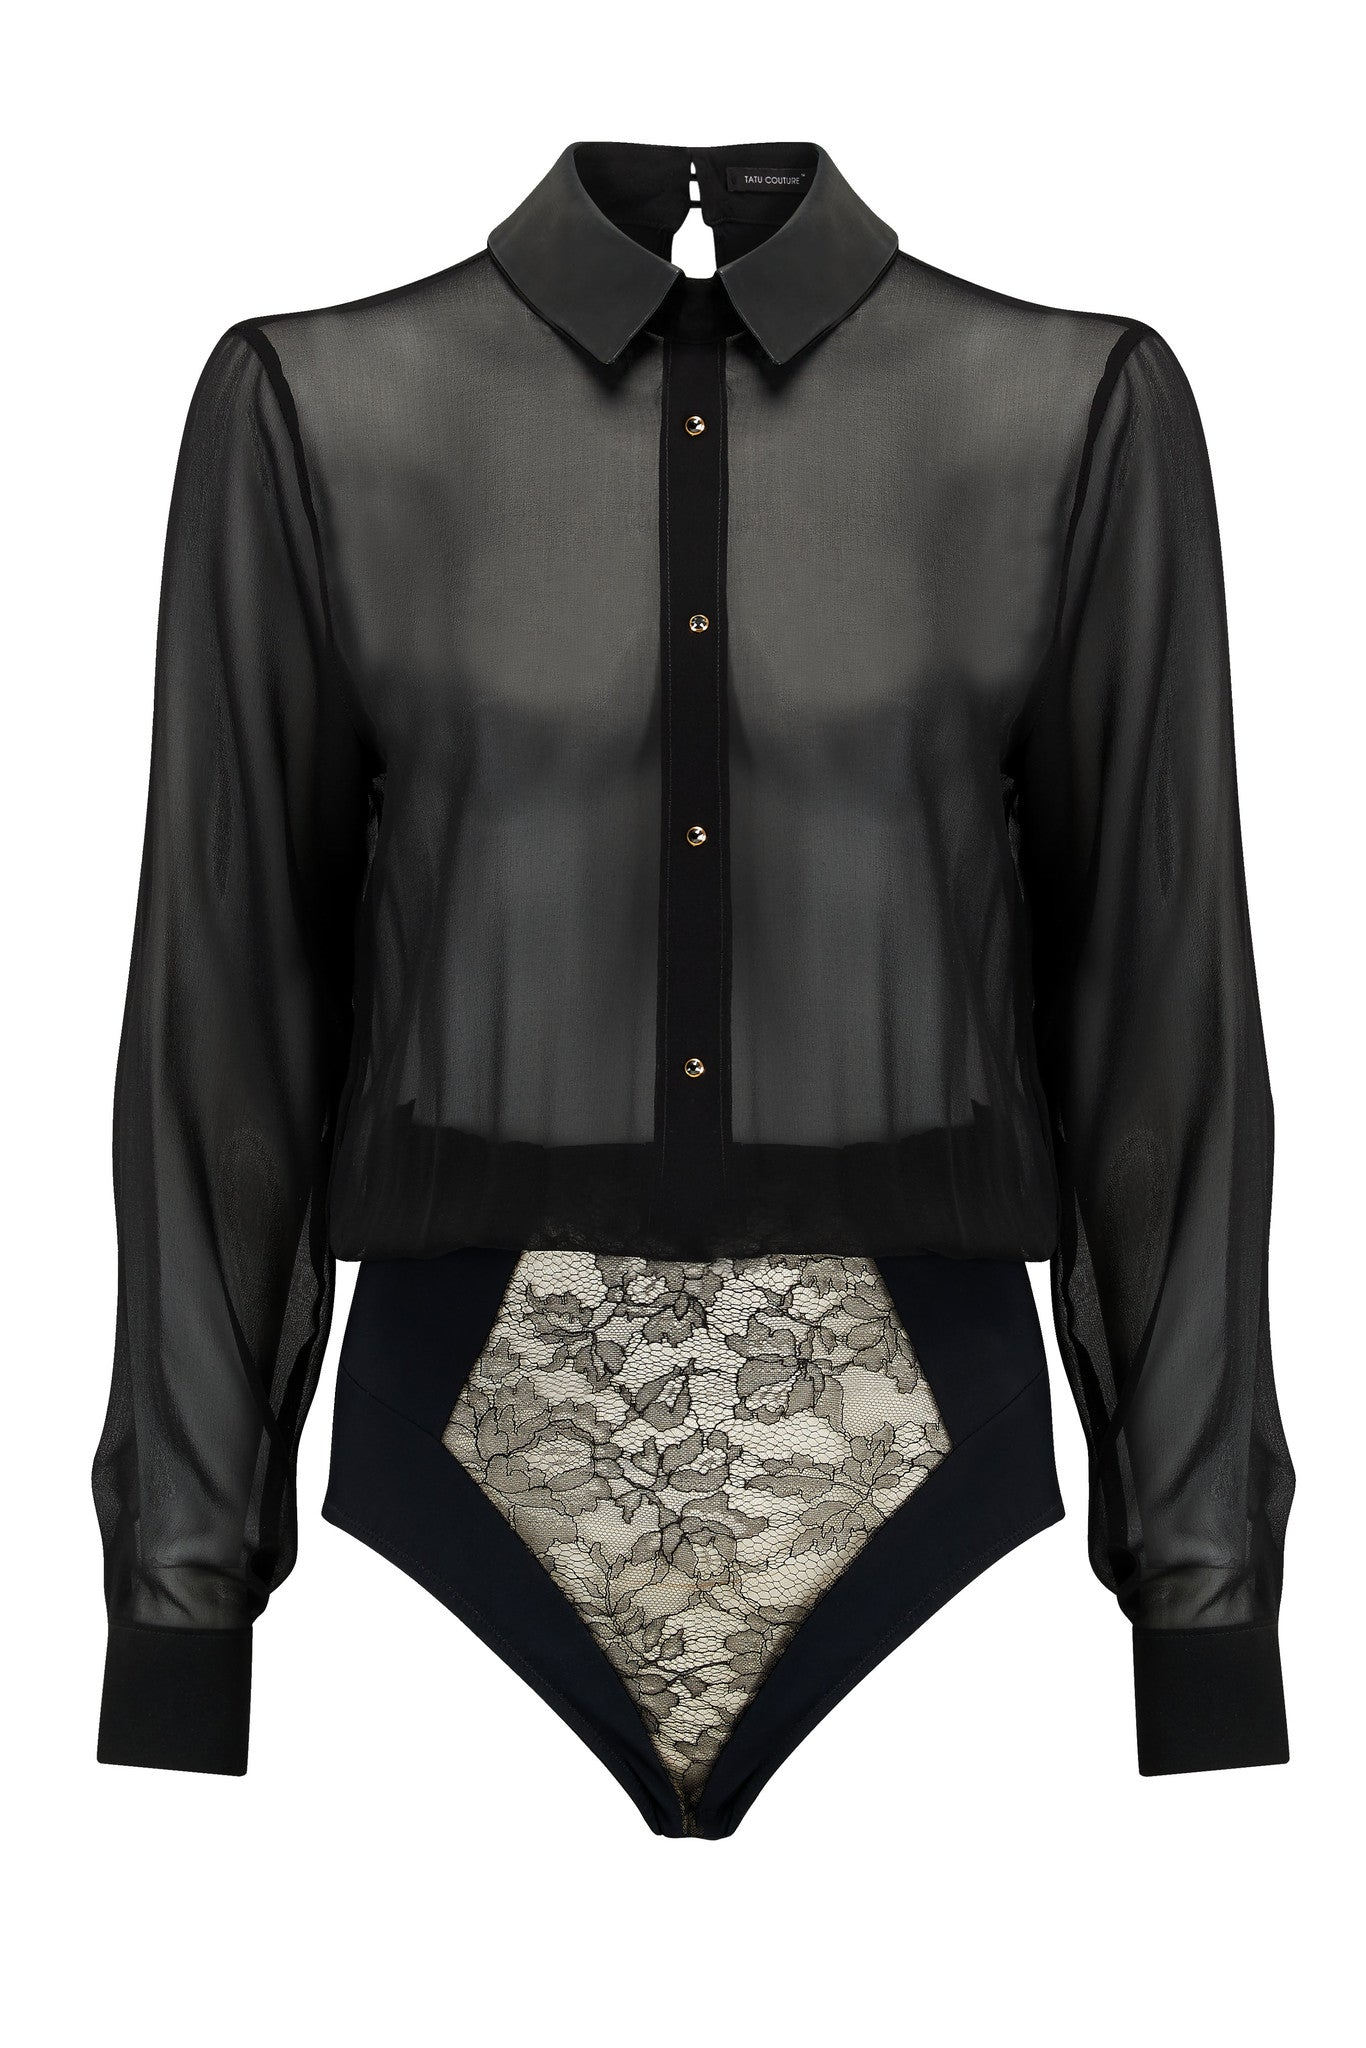 Lula Black sheer bodysuit blouse in black silk with luxury lace brief and crystal detailing